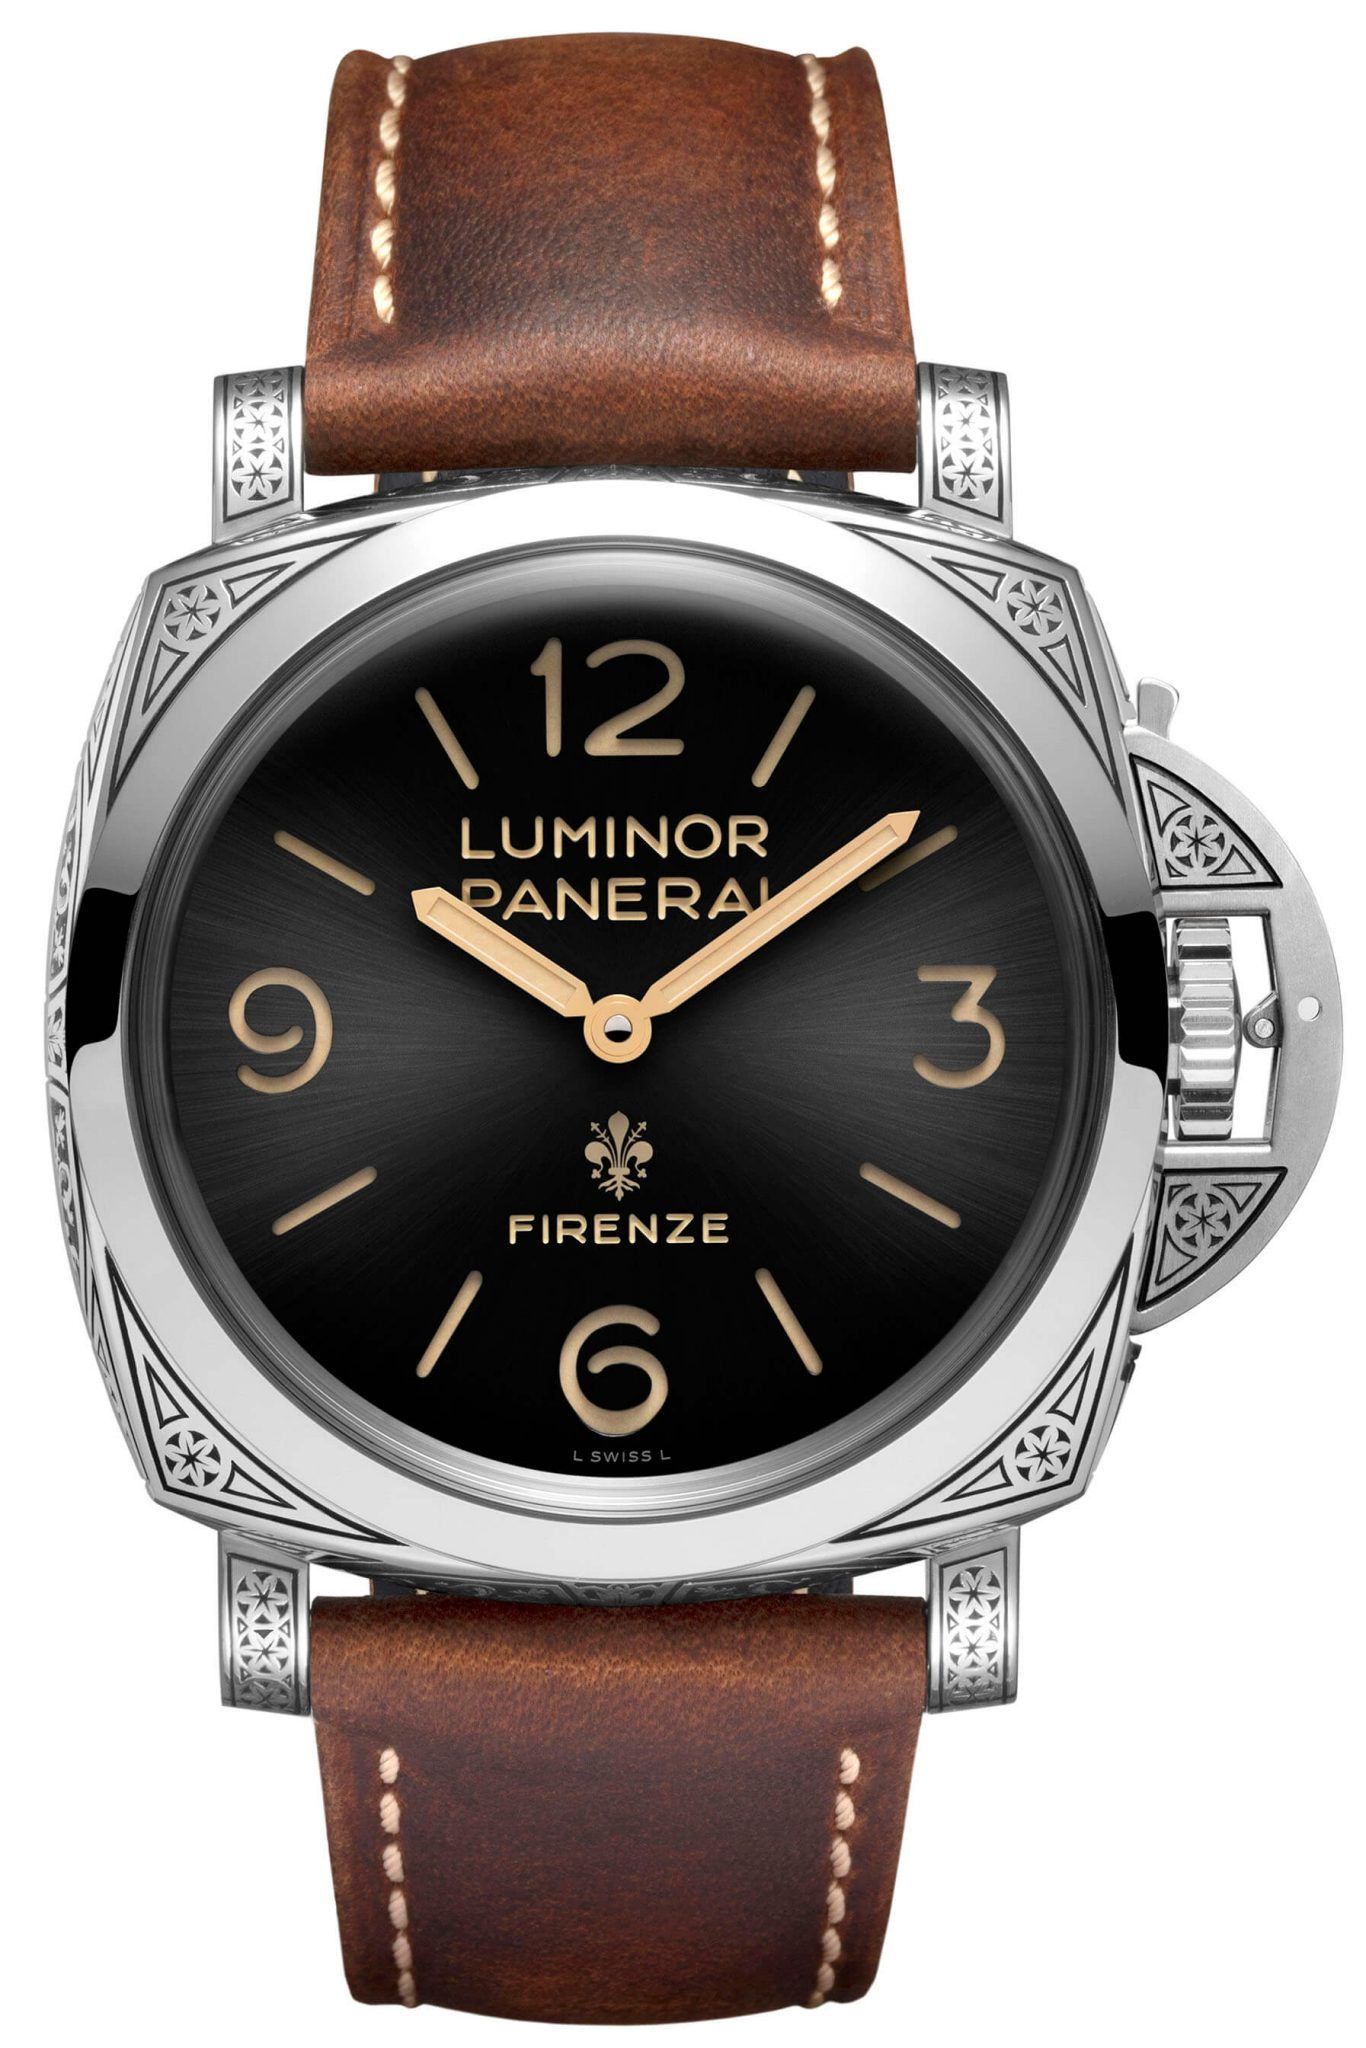 Panerai Luminor 1950 Firenze Pam972 frontal Debajo del relo blog relojes